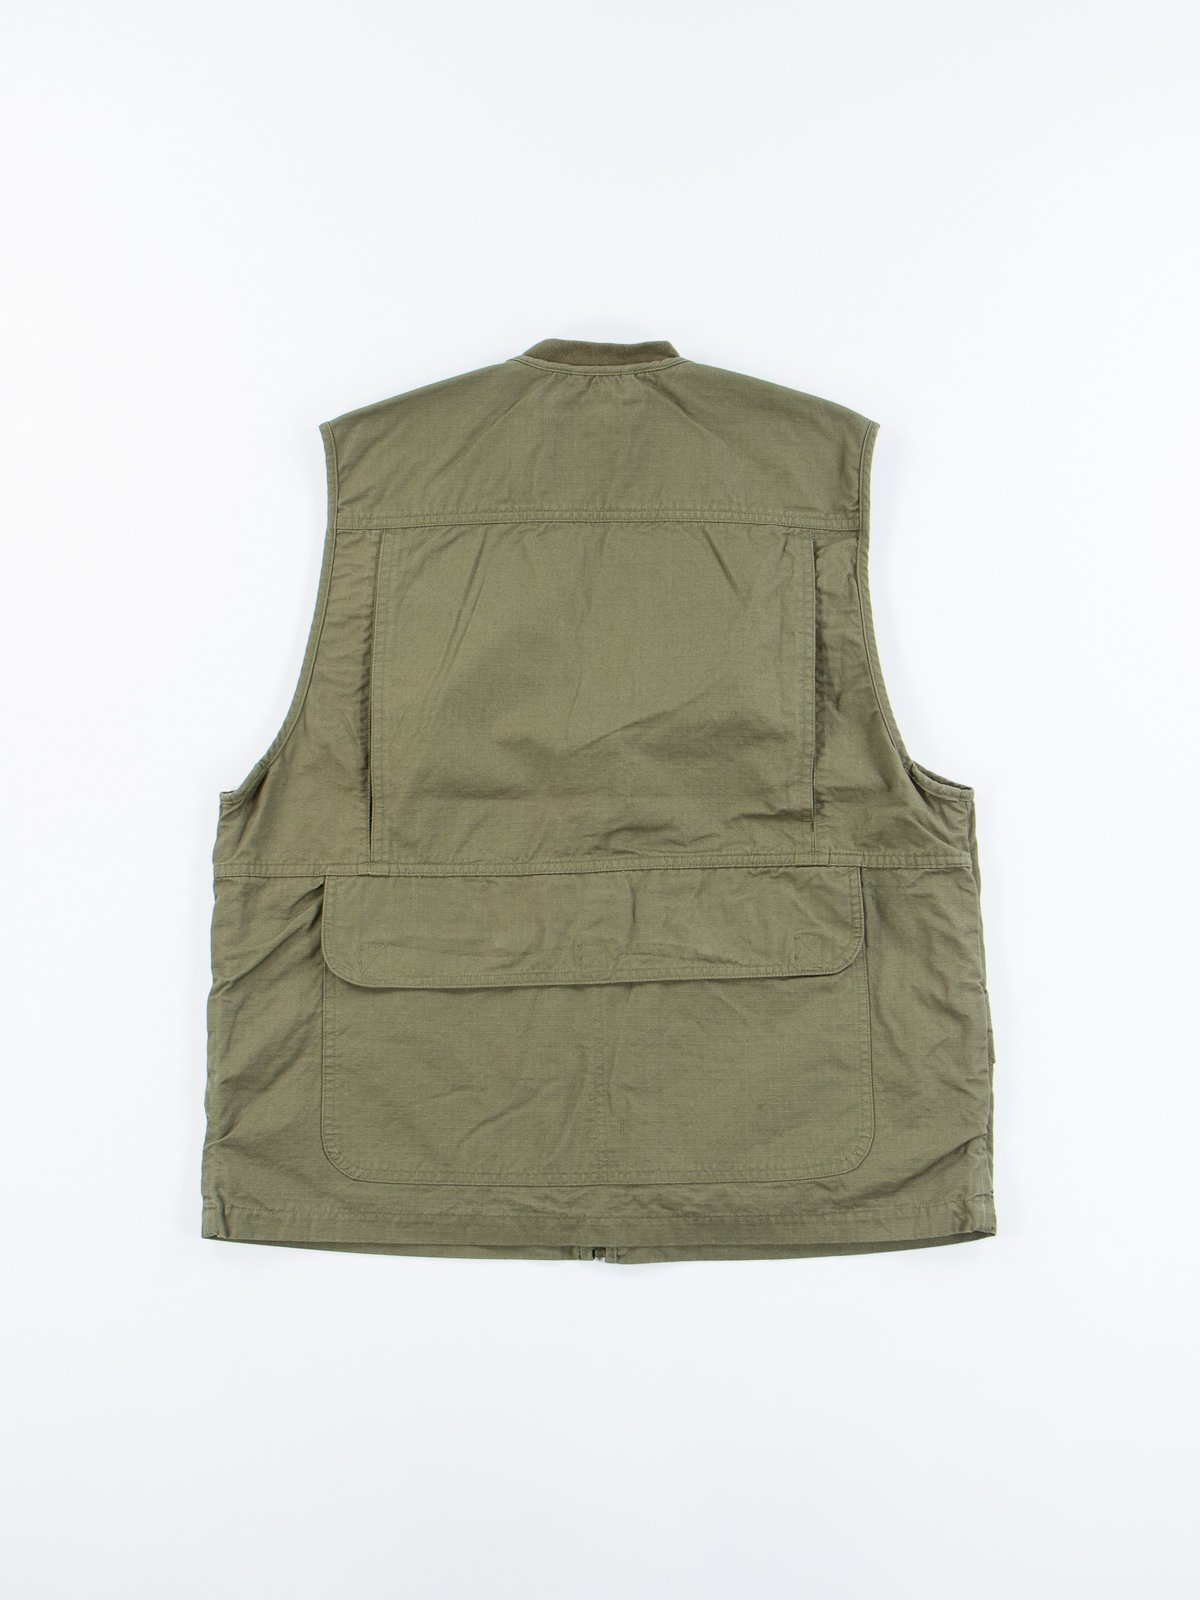 Green Ripstop Utility Vest - Image 7